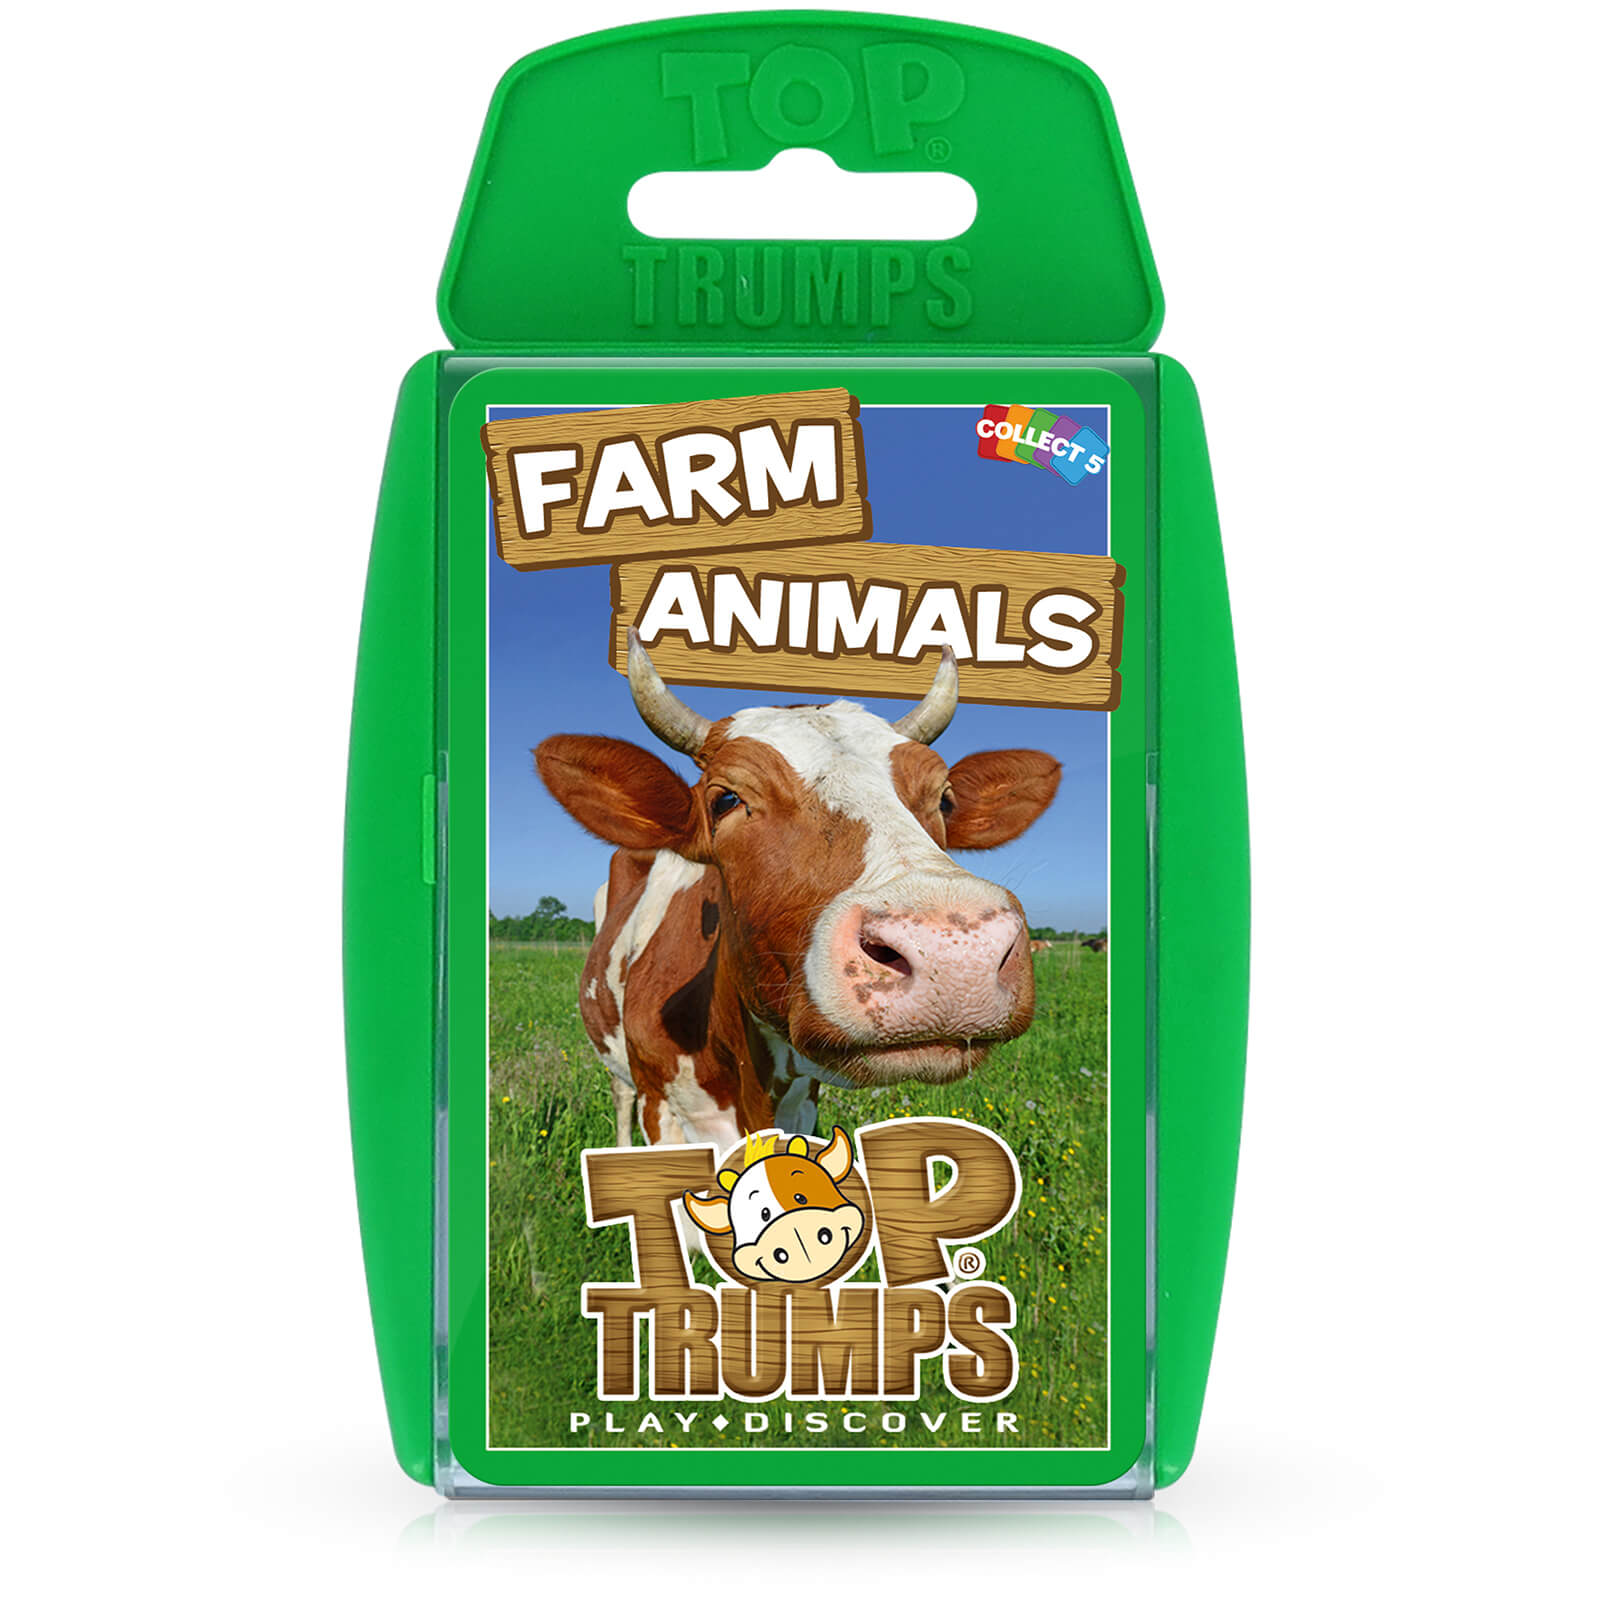 Image of Top Trumps Card Game - Farm Animals Edition